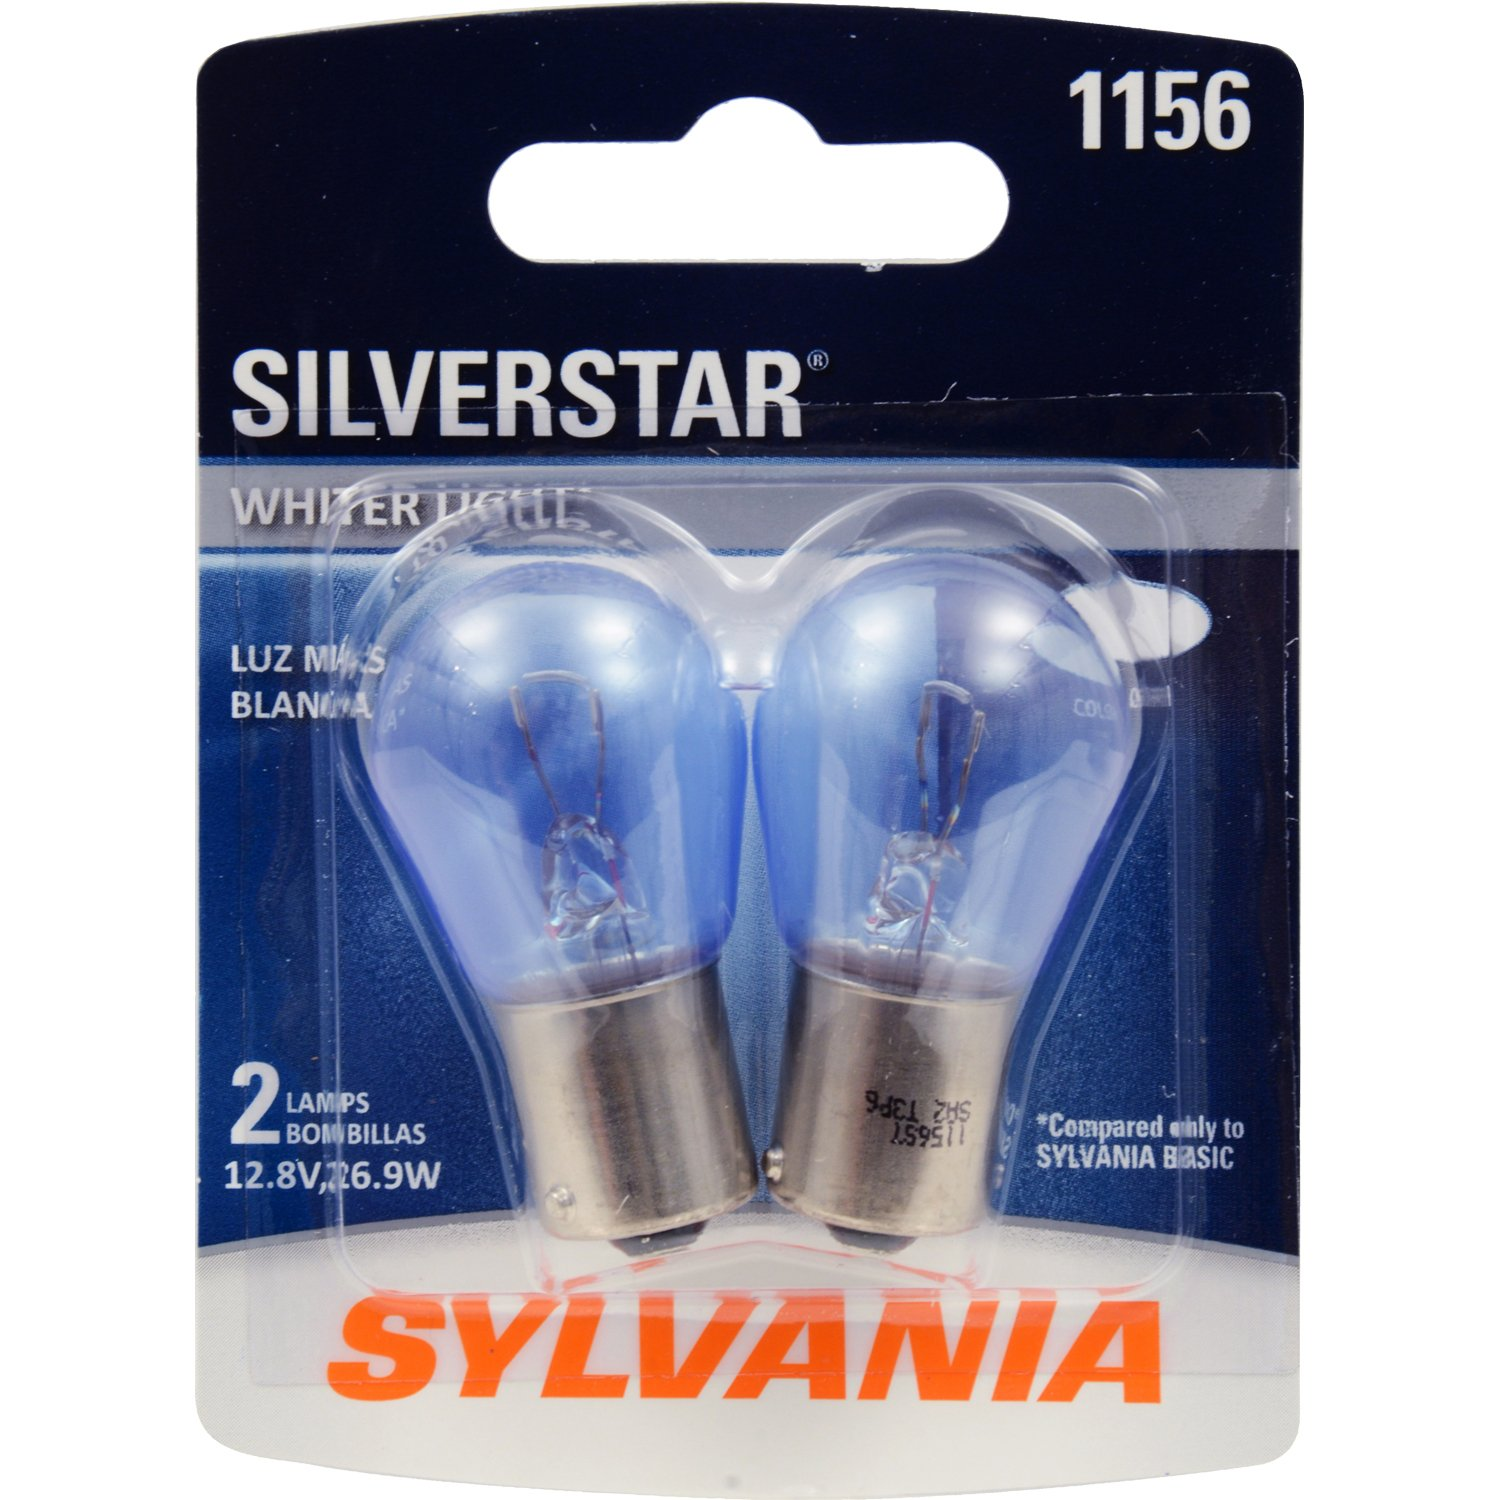 SYLVANIA - 1156 SilverStar Mini Bulb - Brighter and Whiter Light, Ideal for Center High Mount Stop Light (CHMSL), Daytime Running Light (DRL), and more (Contains 2 Bulbs)